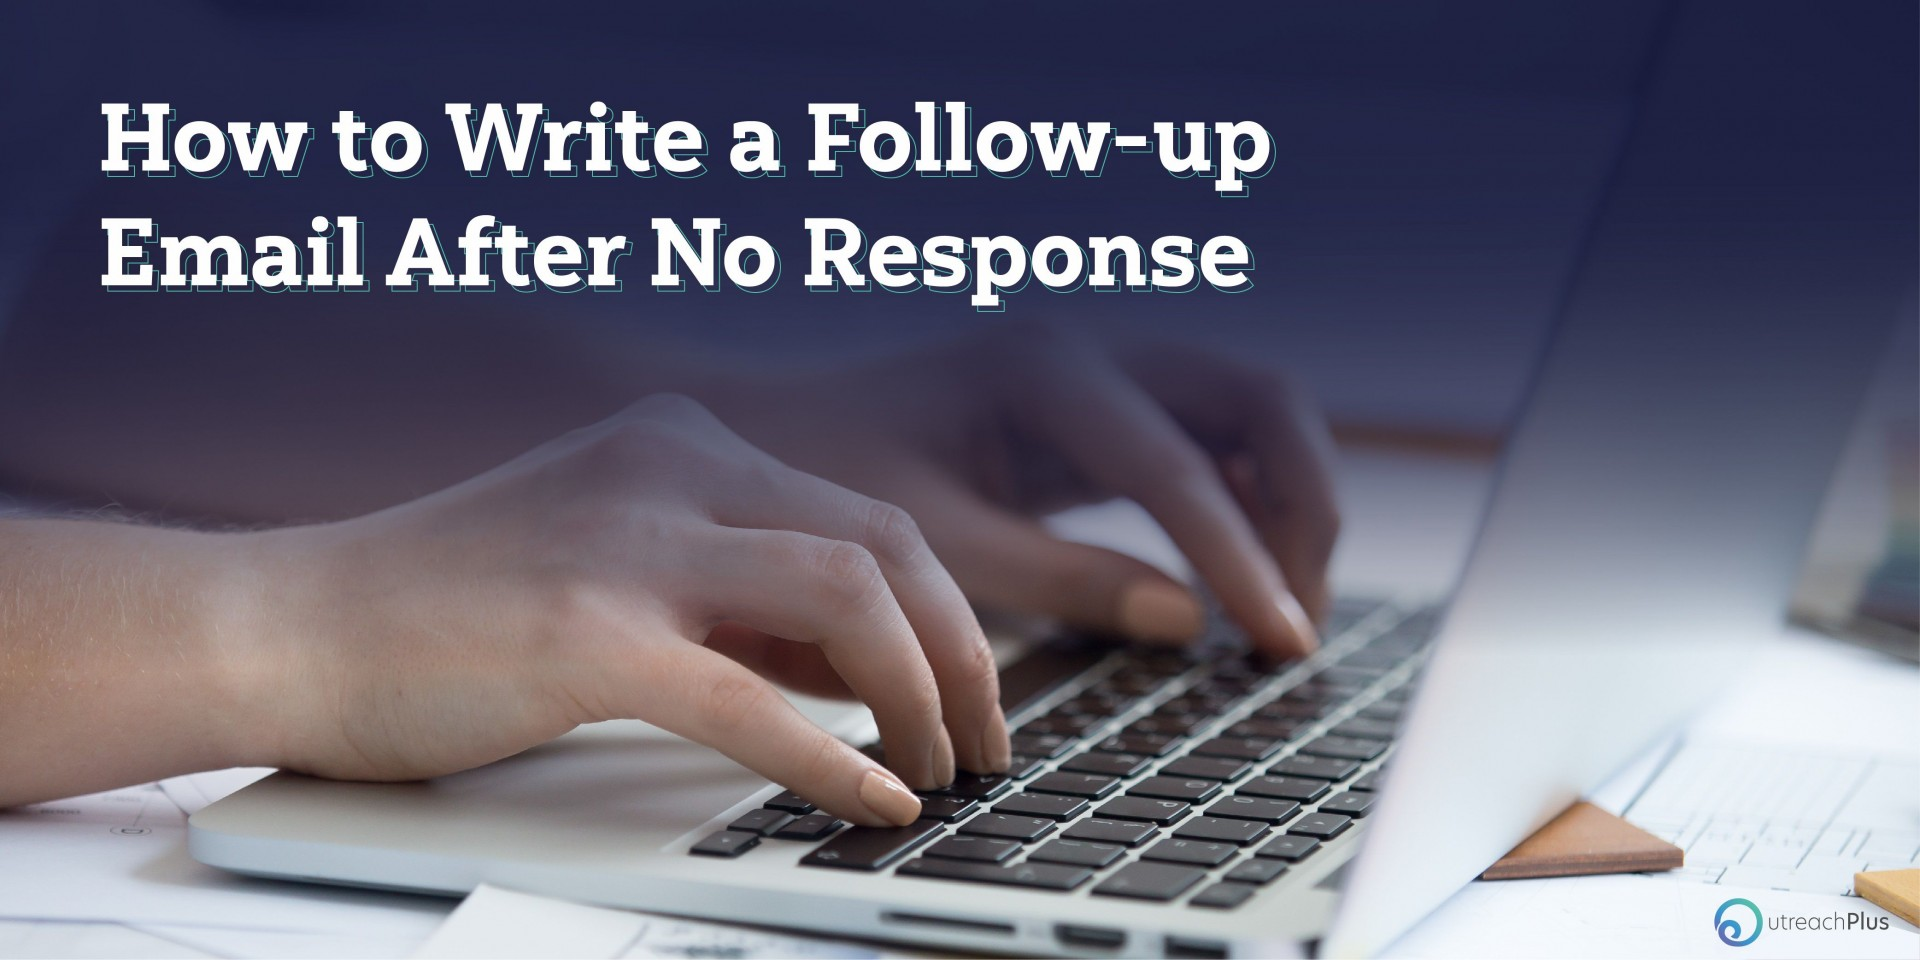 000 Breathtaking Write Follow Up Email After No Response Design 1920